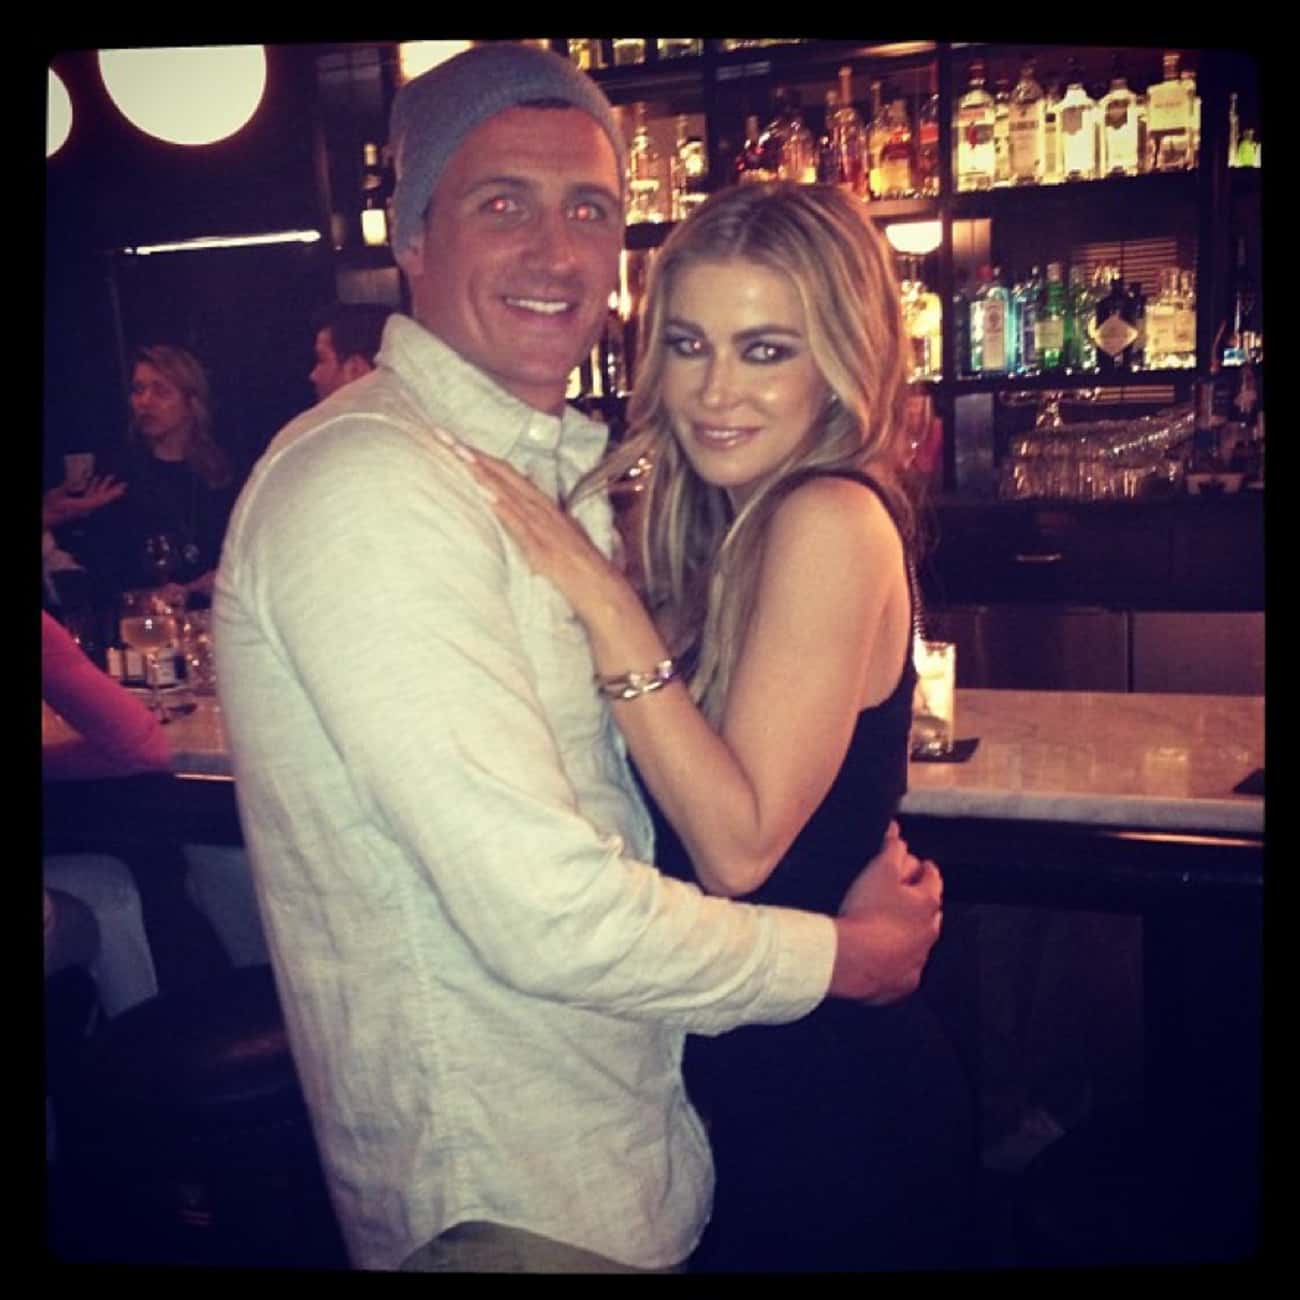 Carmen Electra is listed (or ranked) 3 on the list Women Who Ryan Lochte Has Dated: Girlfriends, Flings & Hookups